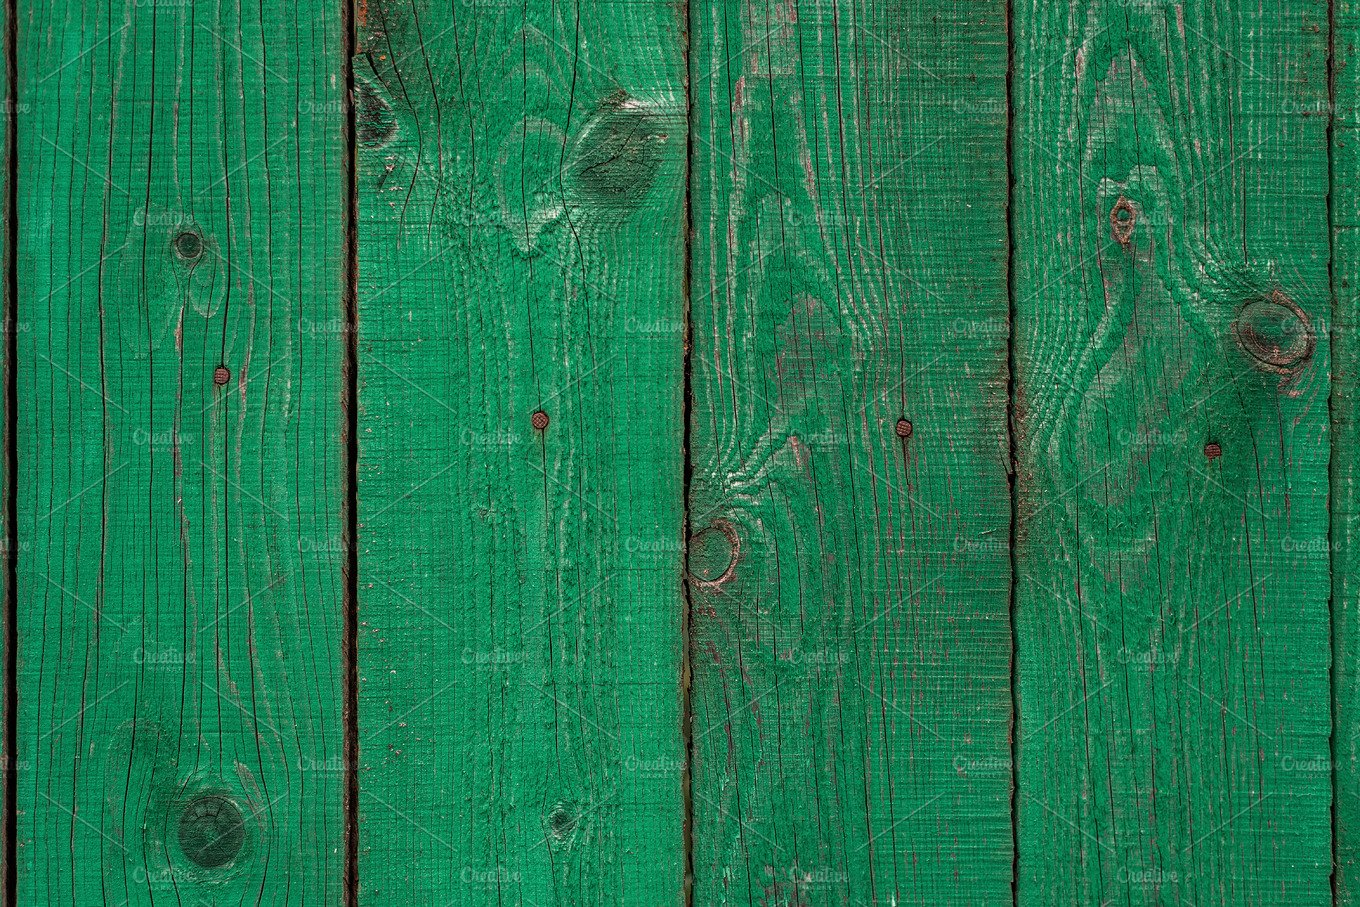 Dark Lime Vintage Wooden Boards Backgrounds And Textures Fence Painted